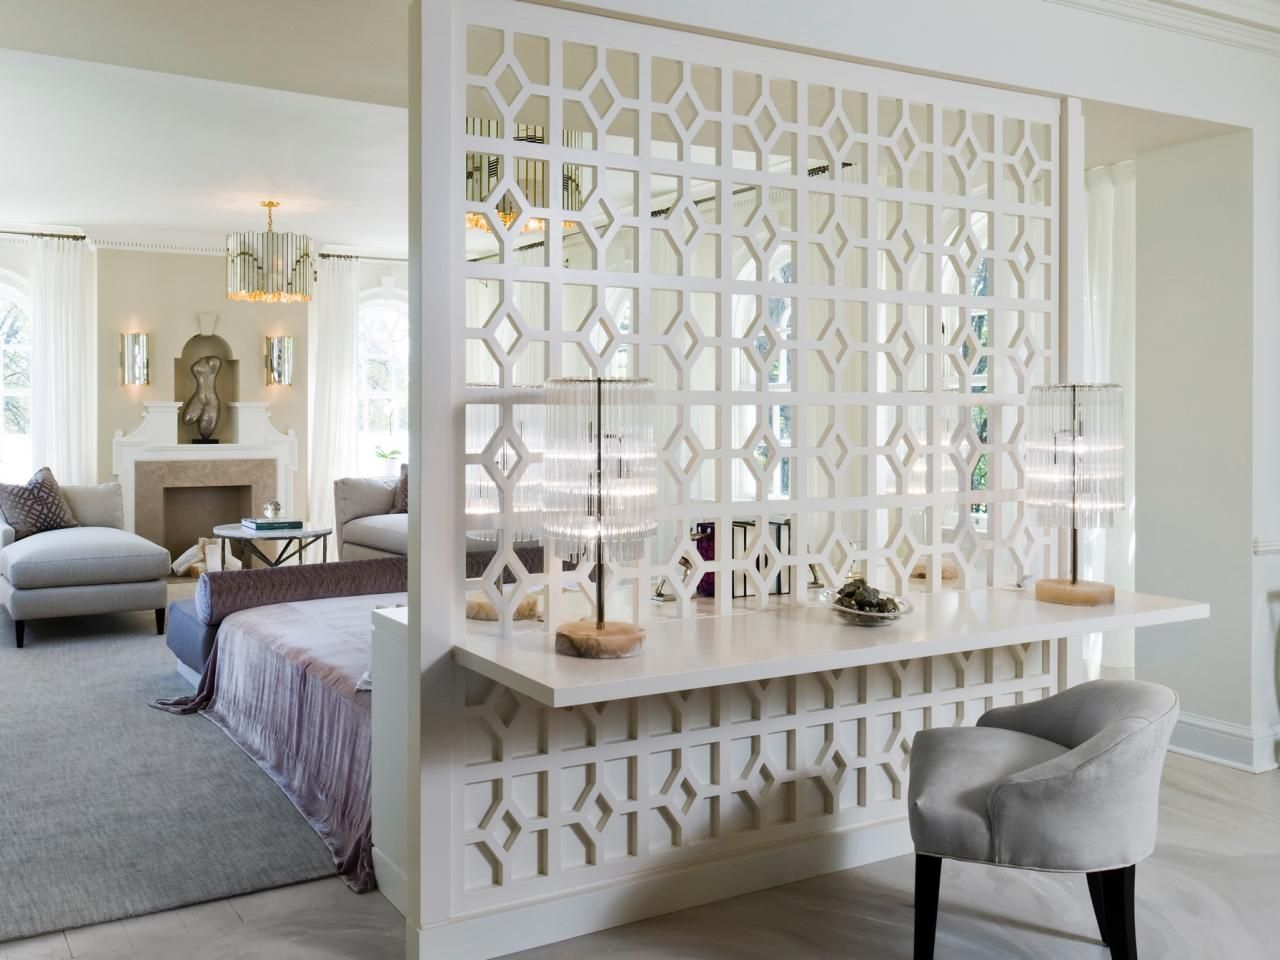 Make Space With Clever Room Dividers Home Ideas Living